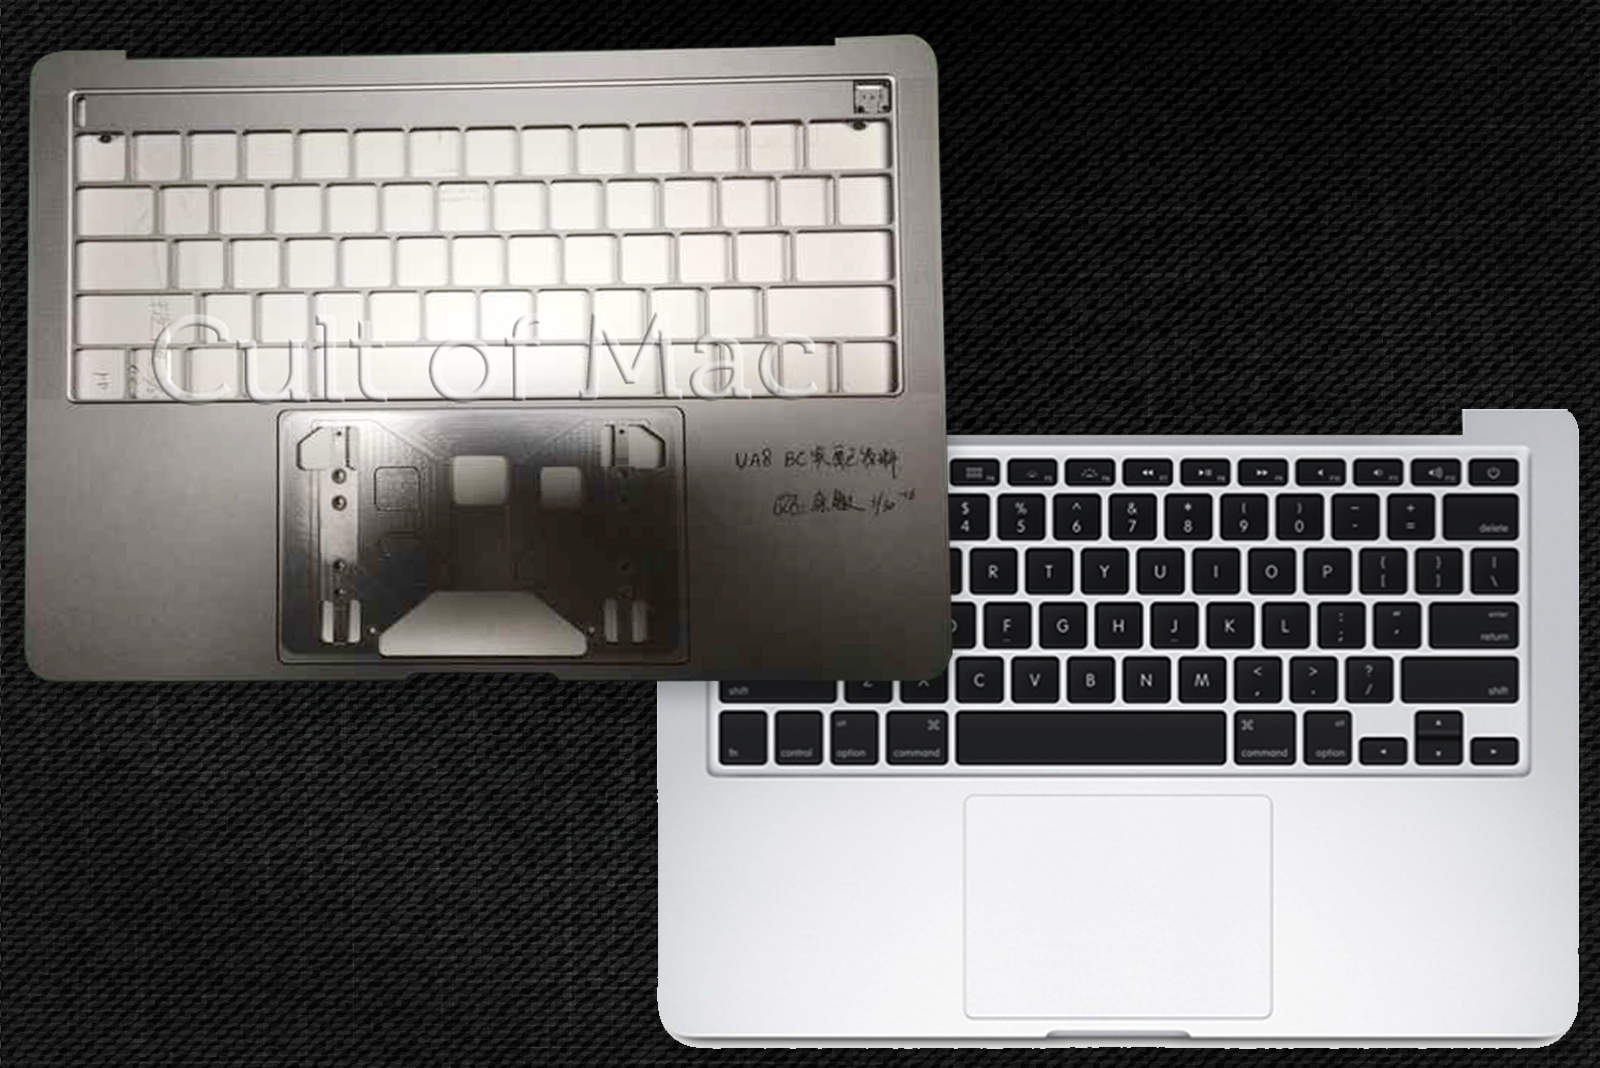 Teclado Macbook pantalla OLED-01